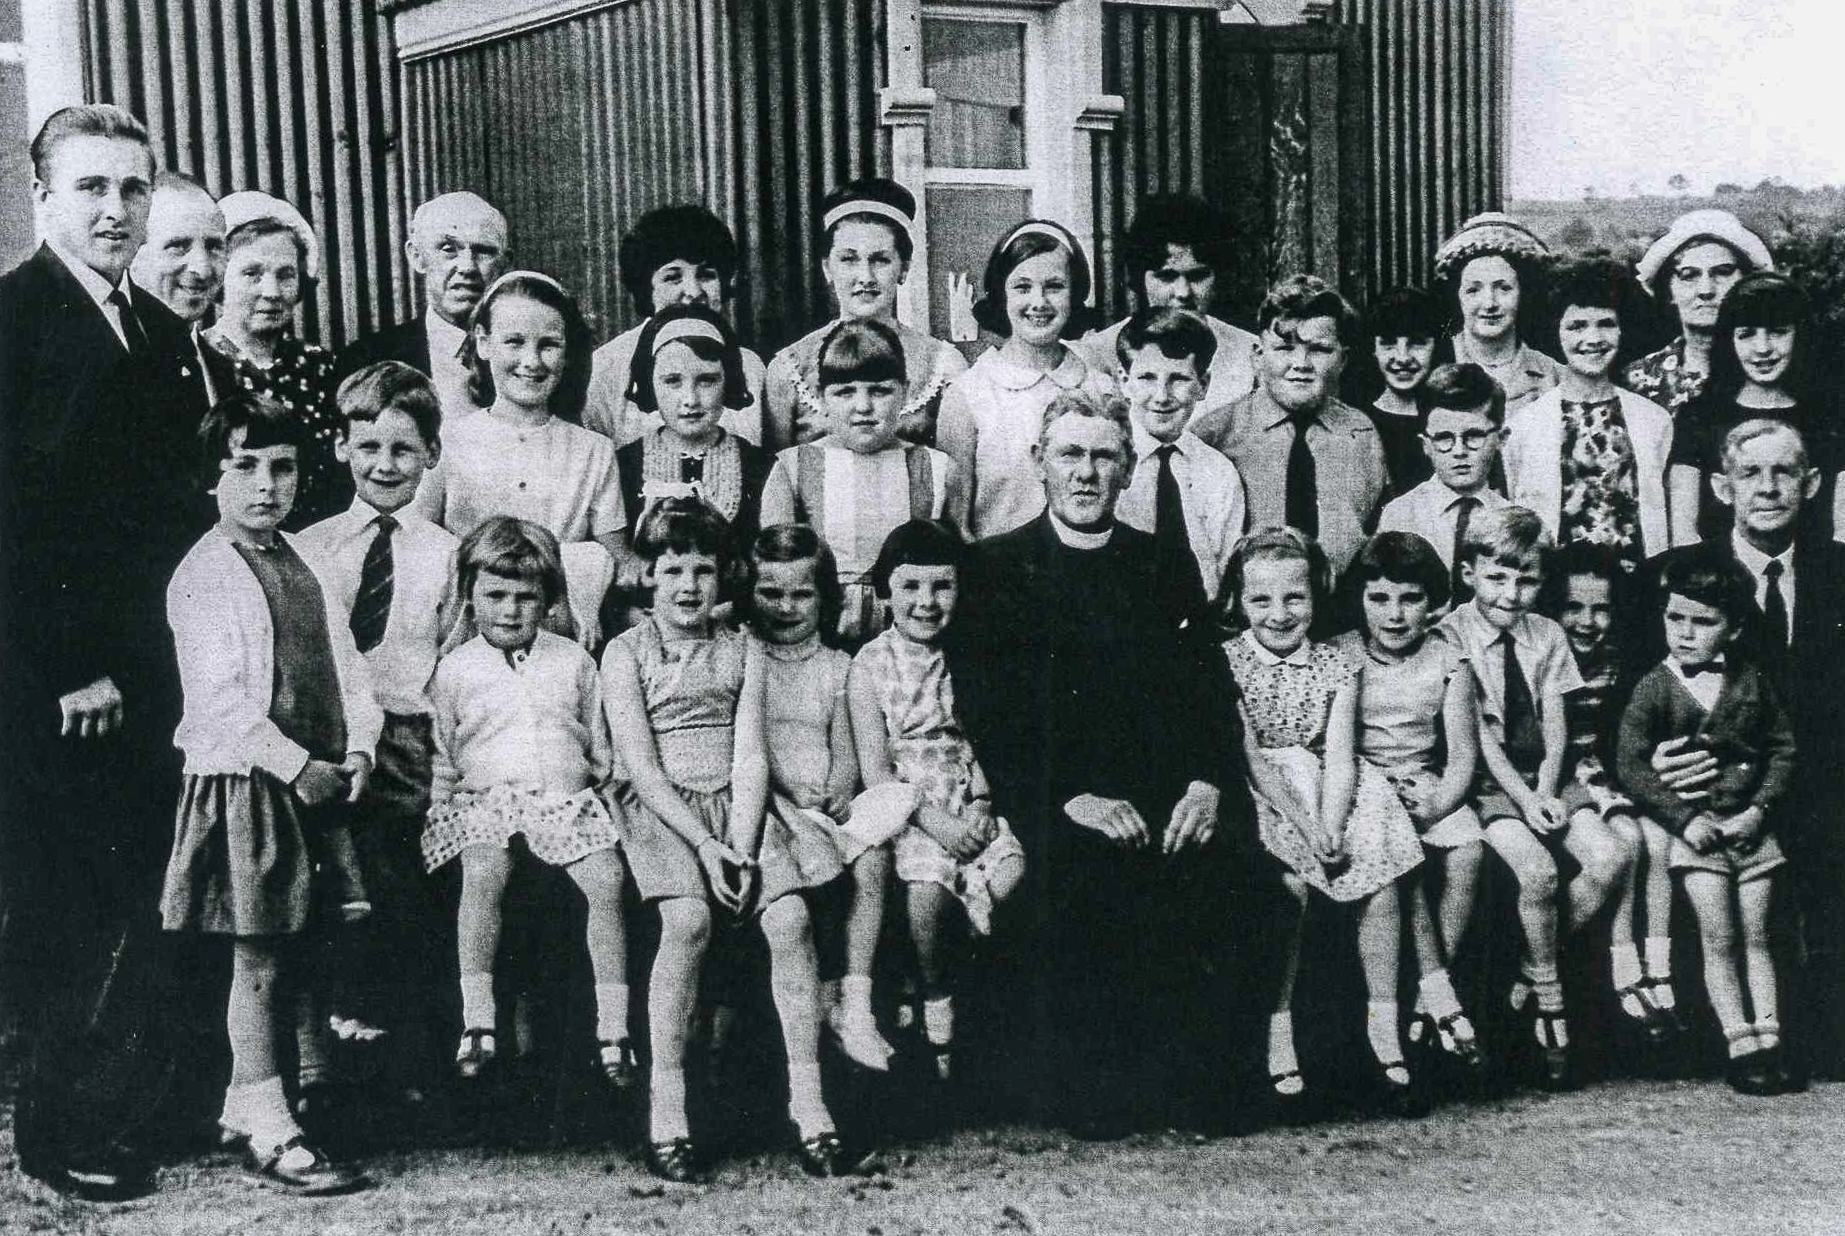 County Times memory lane feature: Forden Sunday School 1963MS749-2017